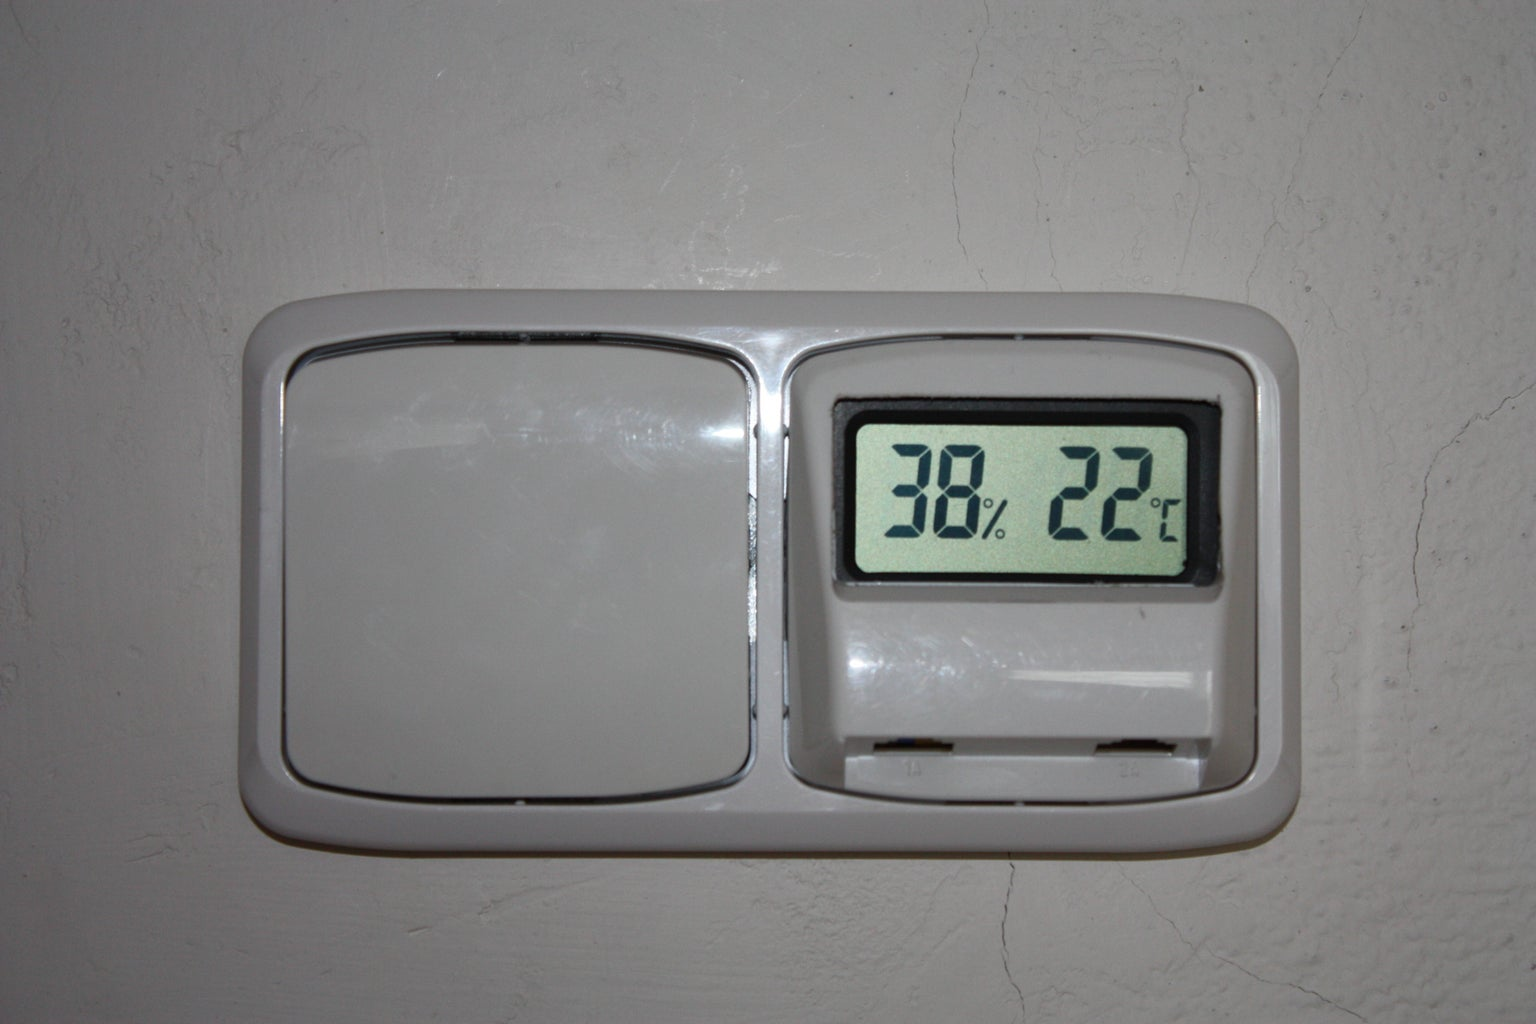 Thermometer in Wall Light Switch